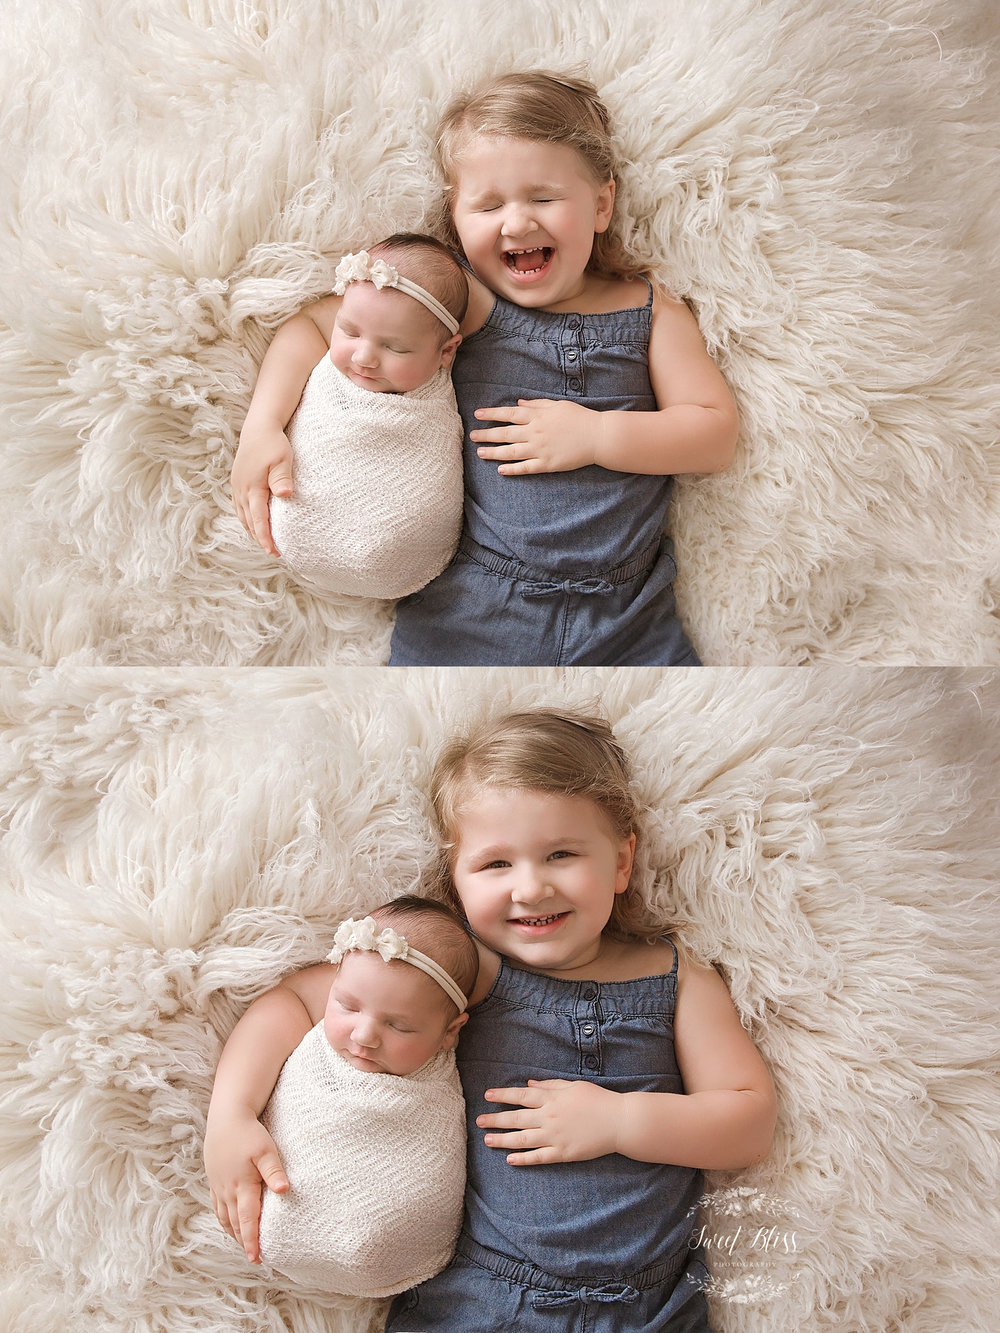 baltimorenewbornphotographer_Sweetblissphoto_siblingphotoshootcreamfur.jpg